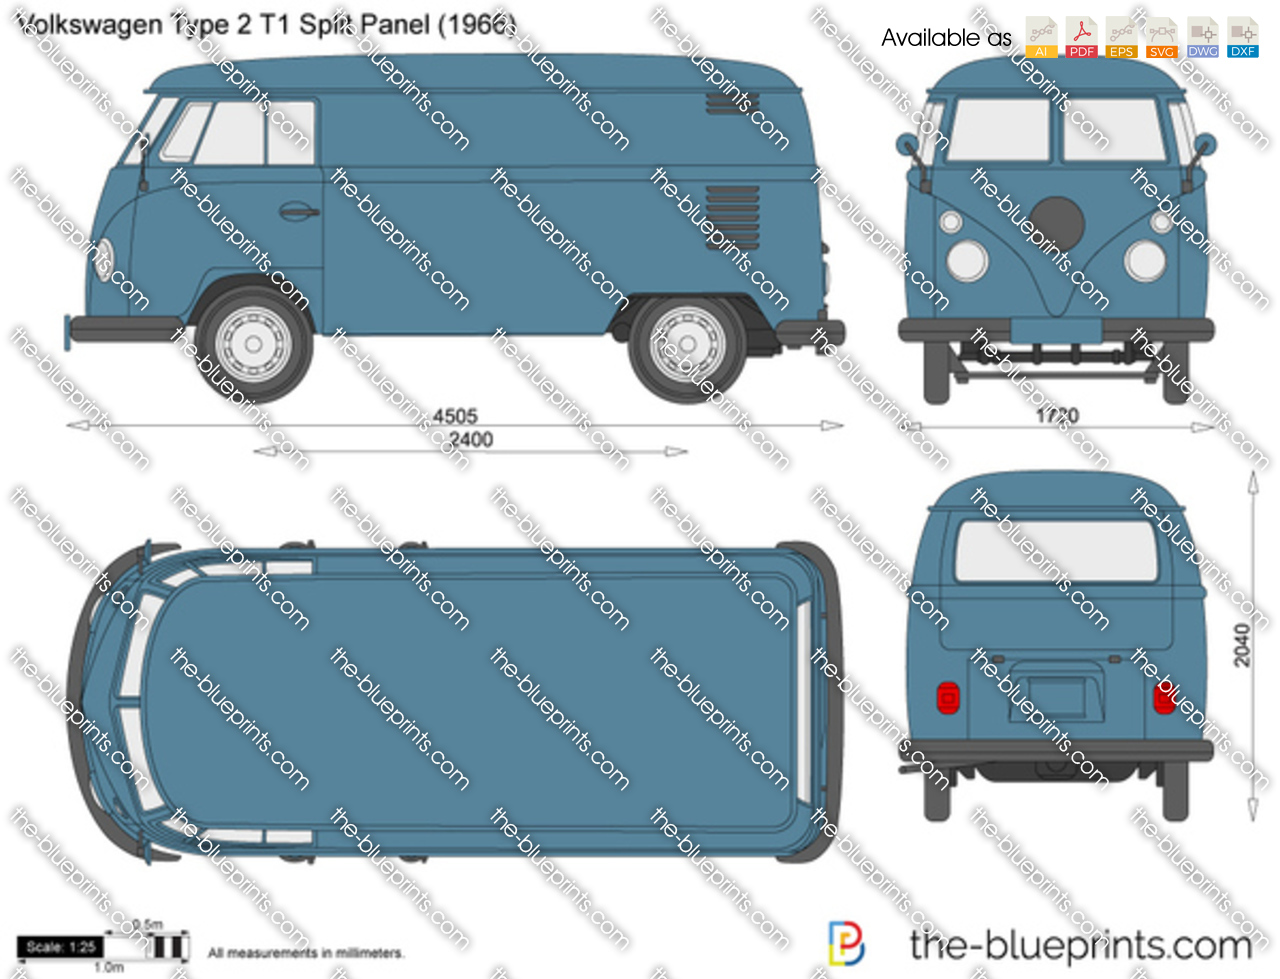 Volkswagen Type 2 T1 Split Panel 1962